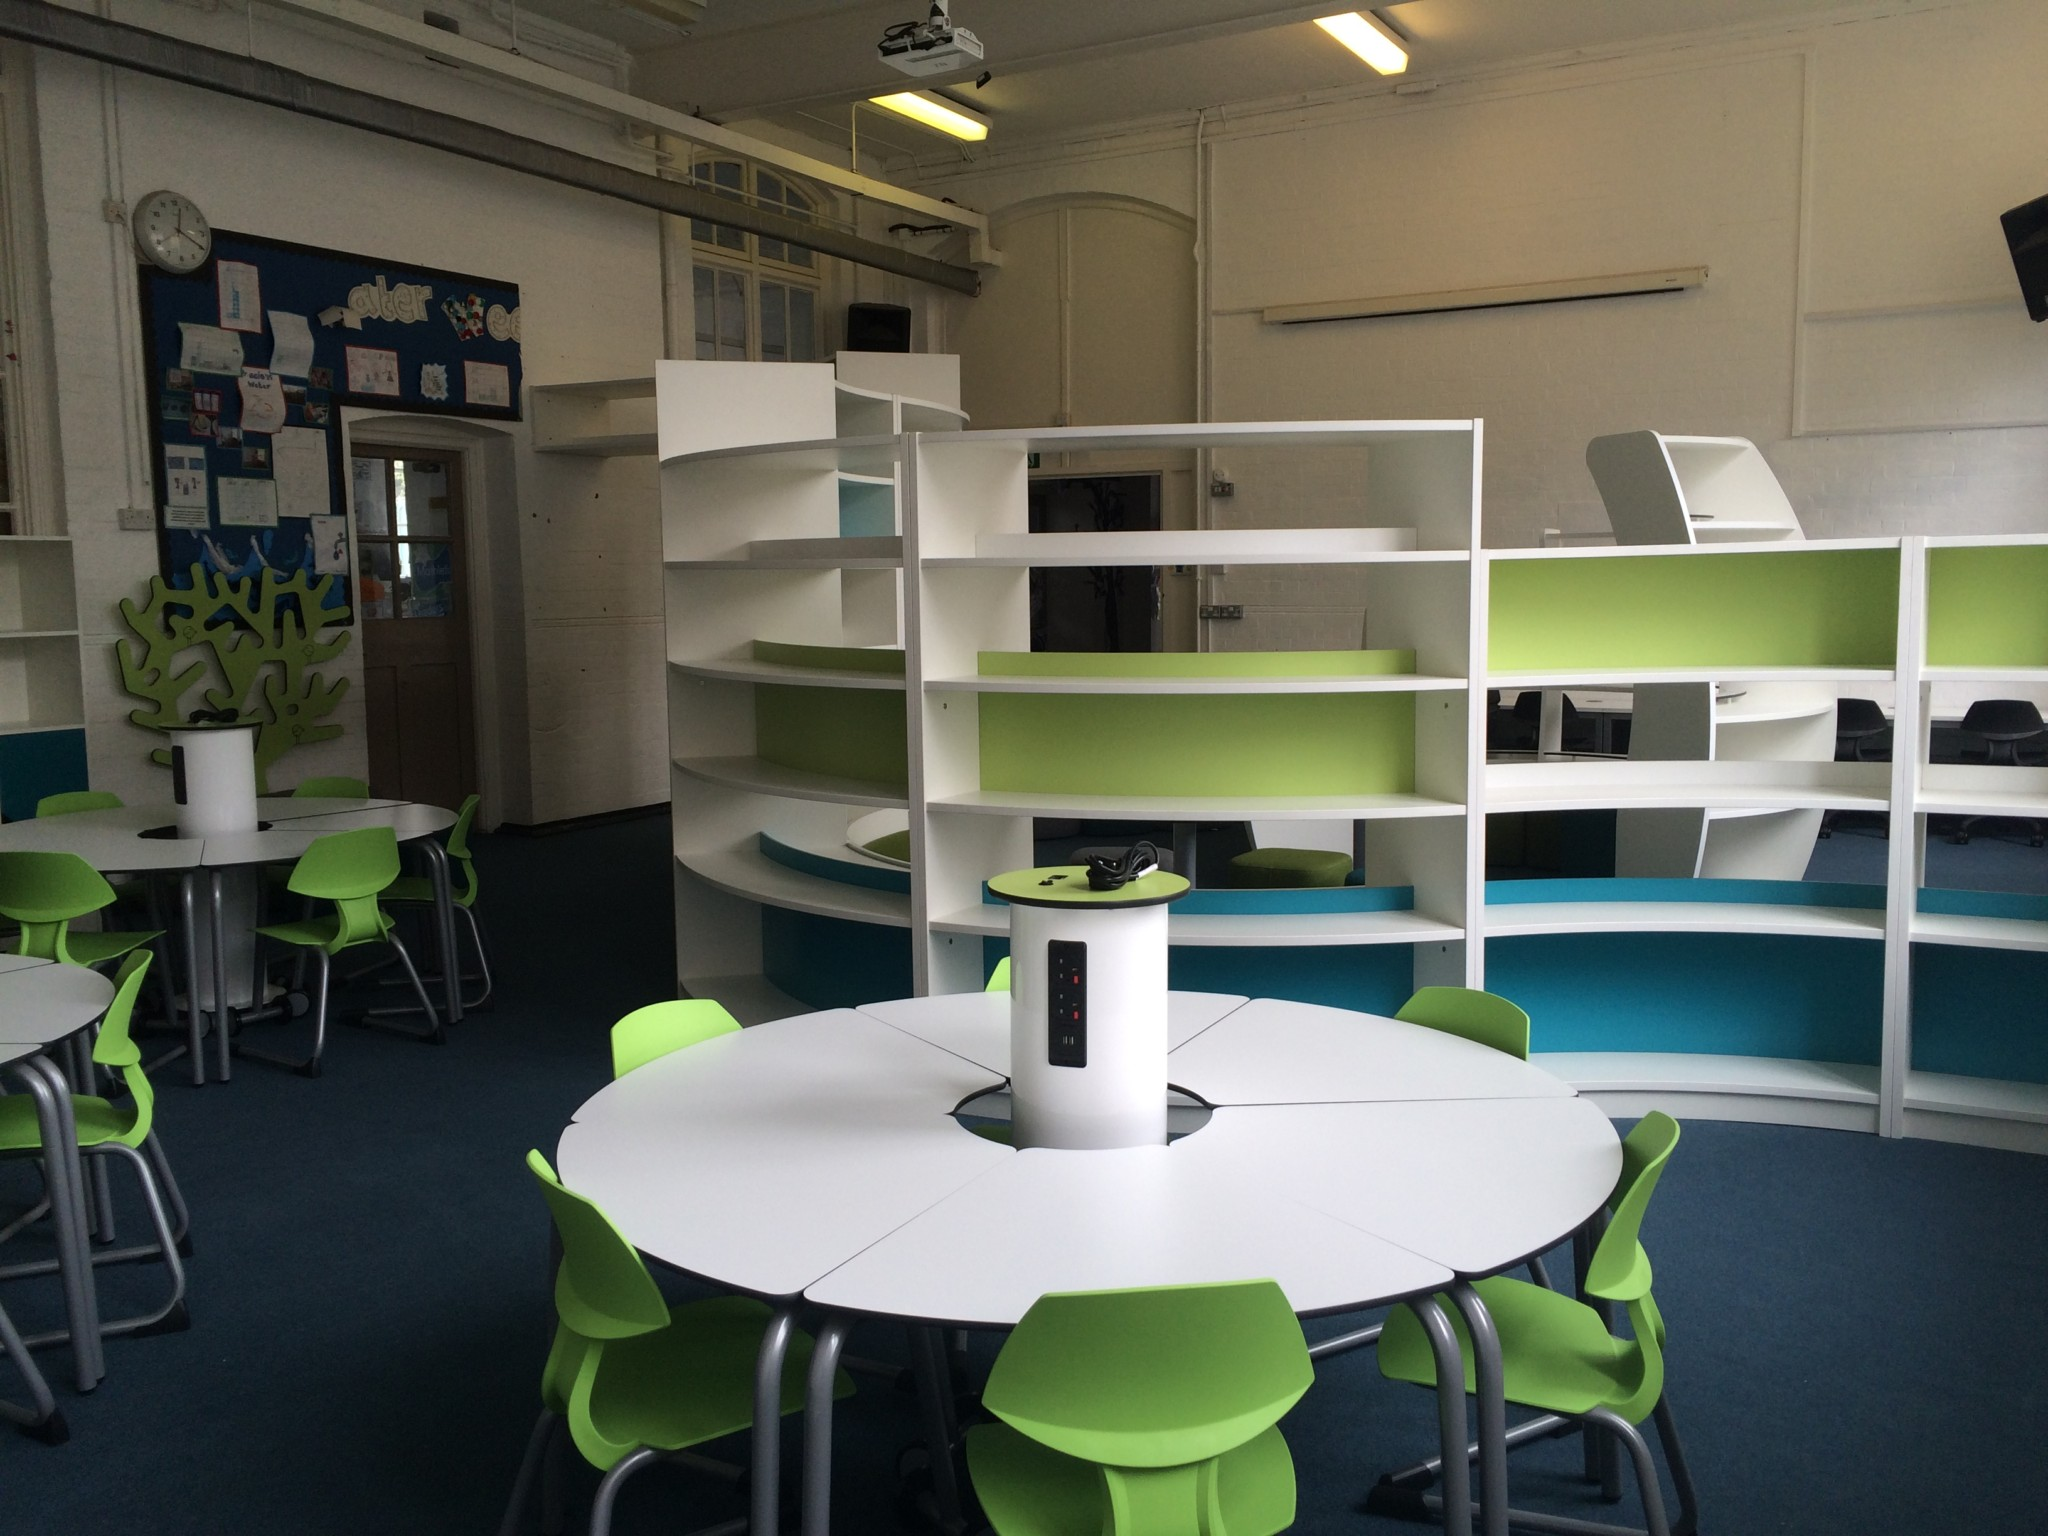 St James' C of E Primary – LRC powerhubs and t41 and t chairs